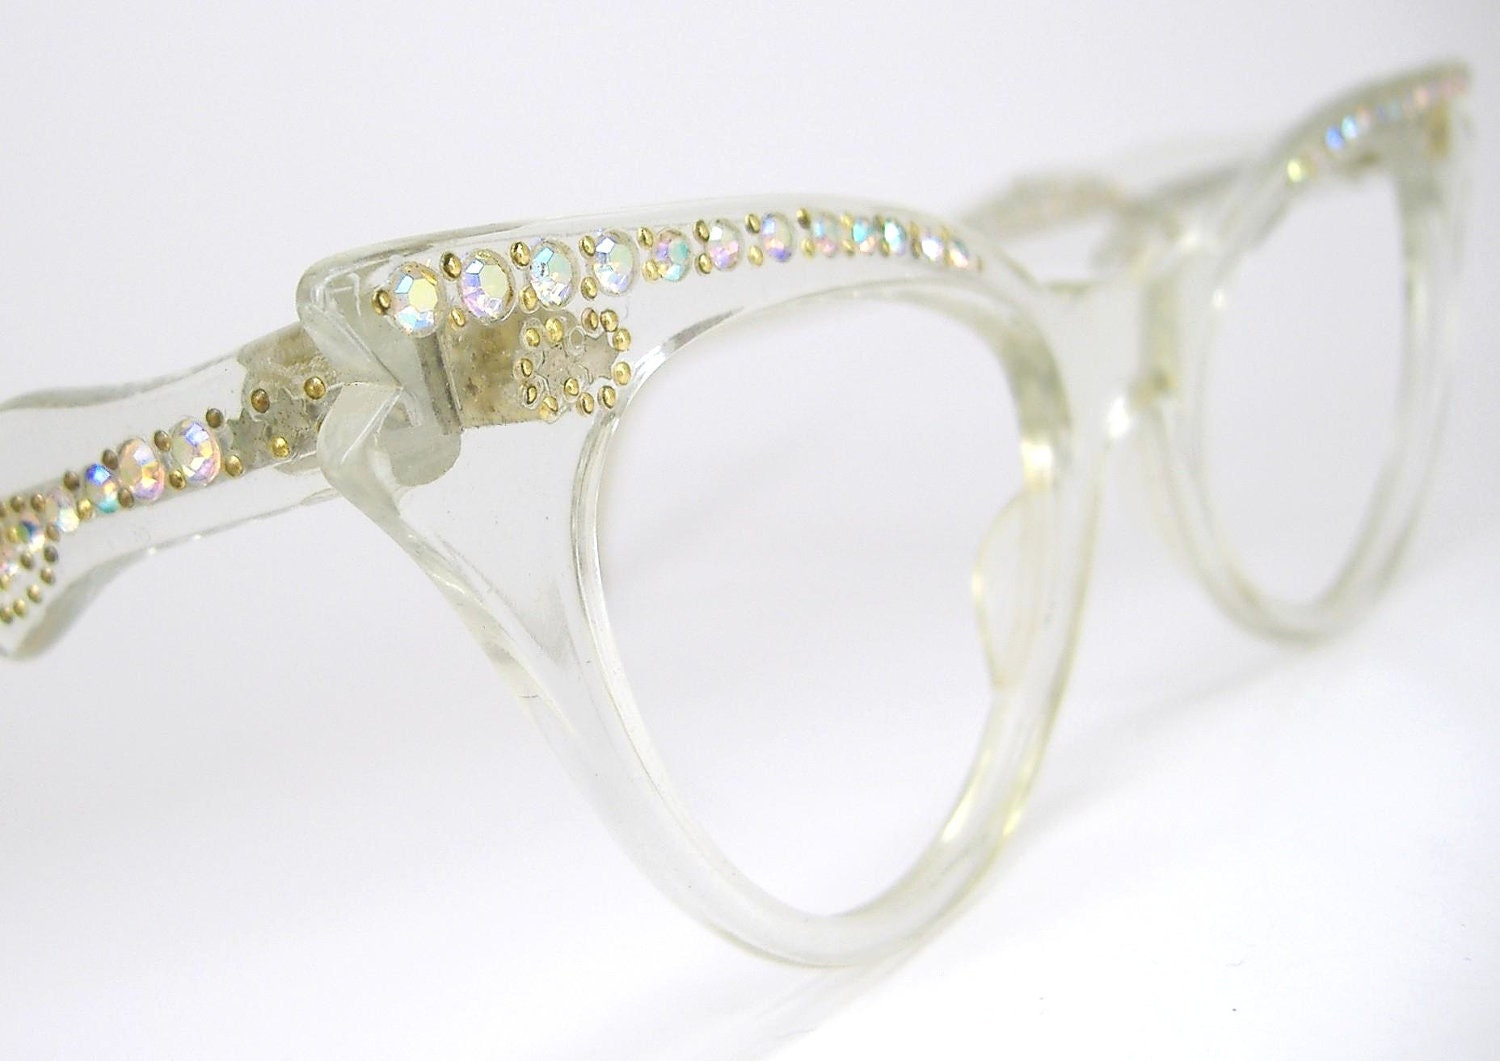 Eyeglasses Frames With Bling : Vintage 1950s French Rhinestone Eyeglasses by ...